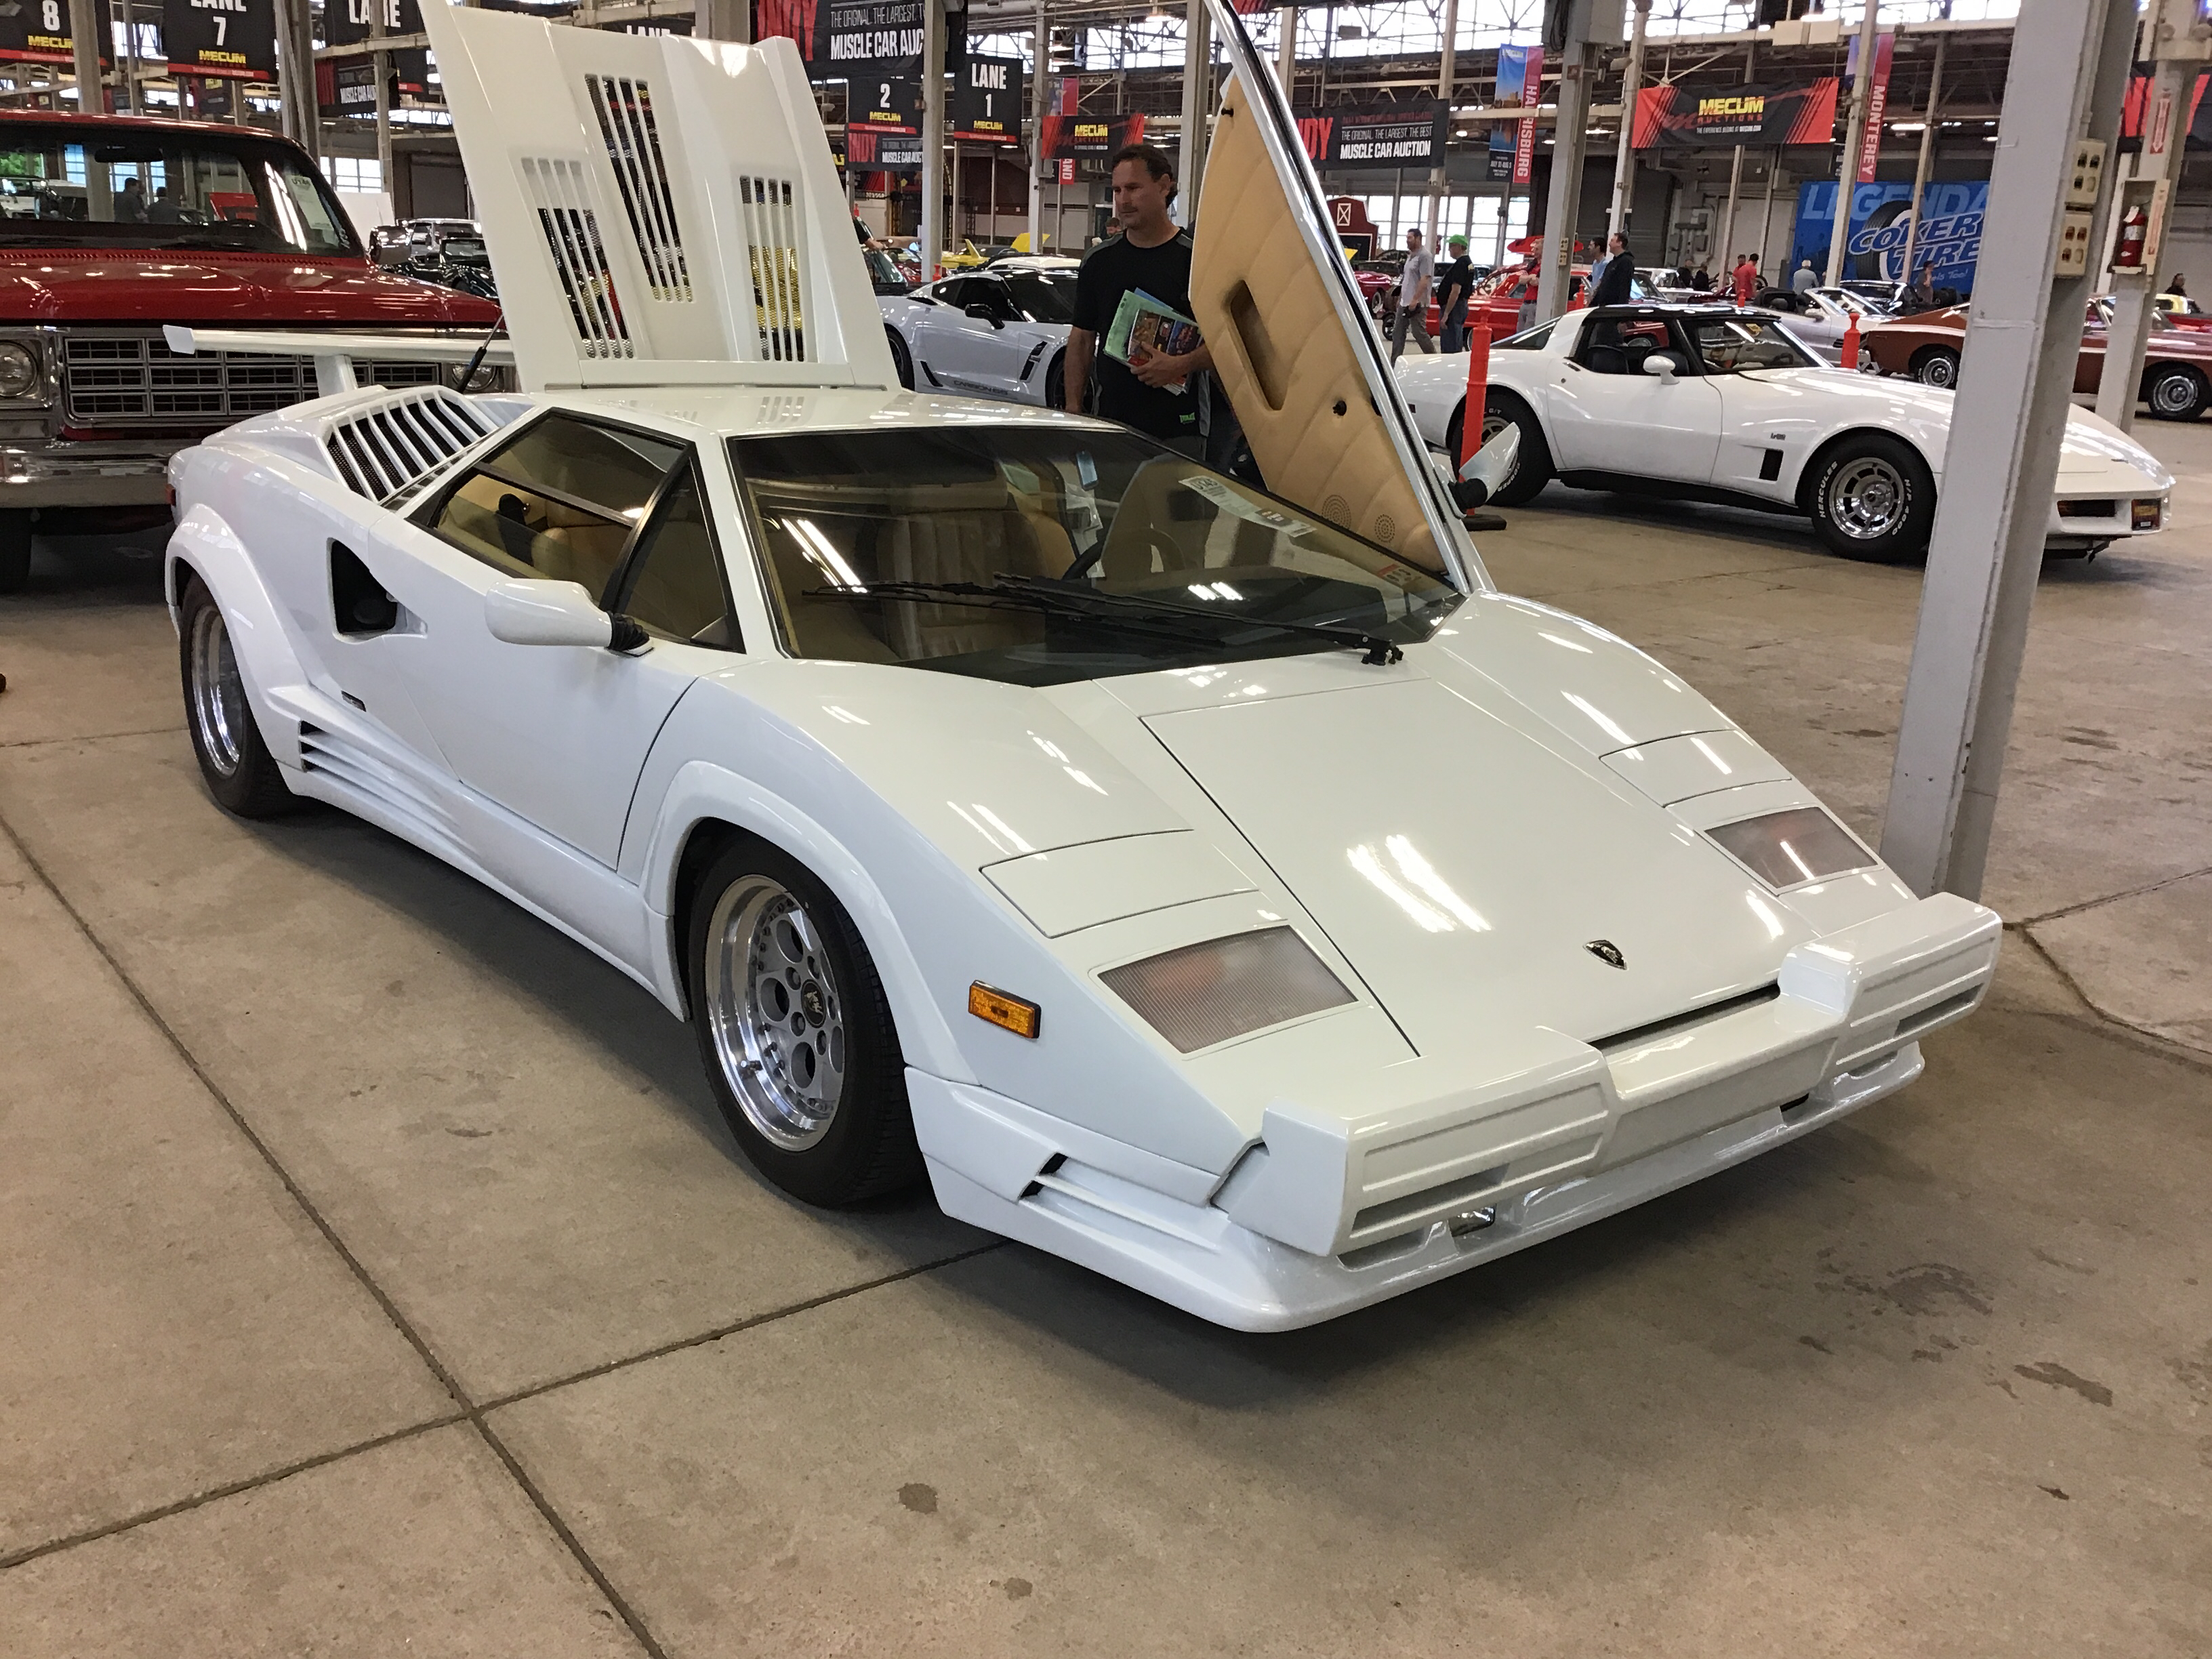 1984 Lamborghini Countach Lp500s Values Hagerty Valuation Tool